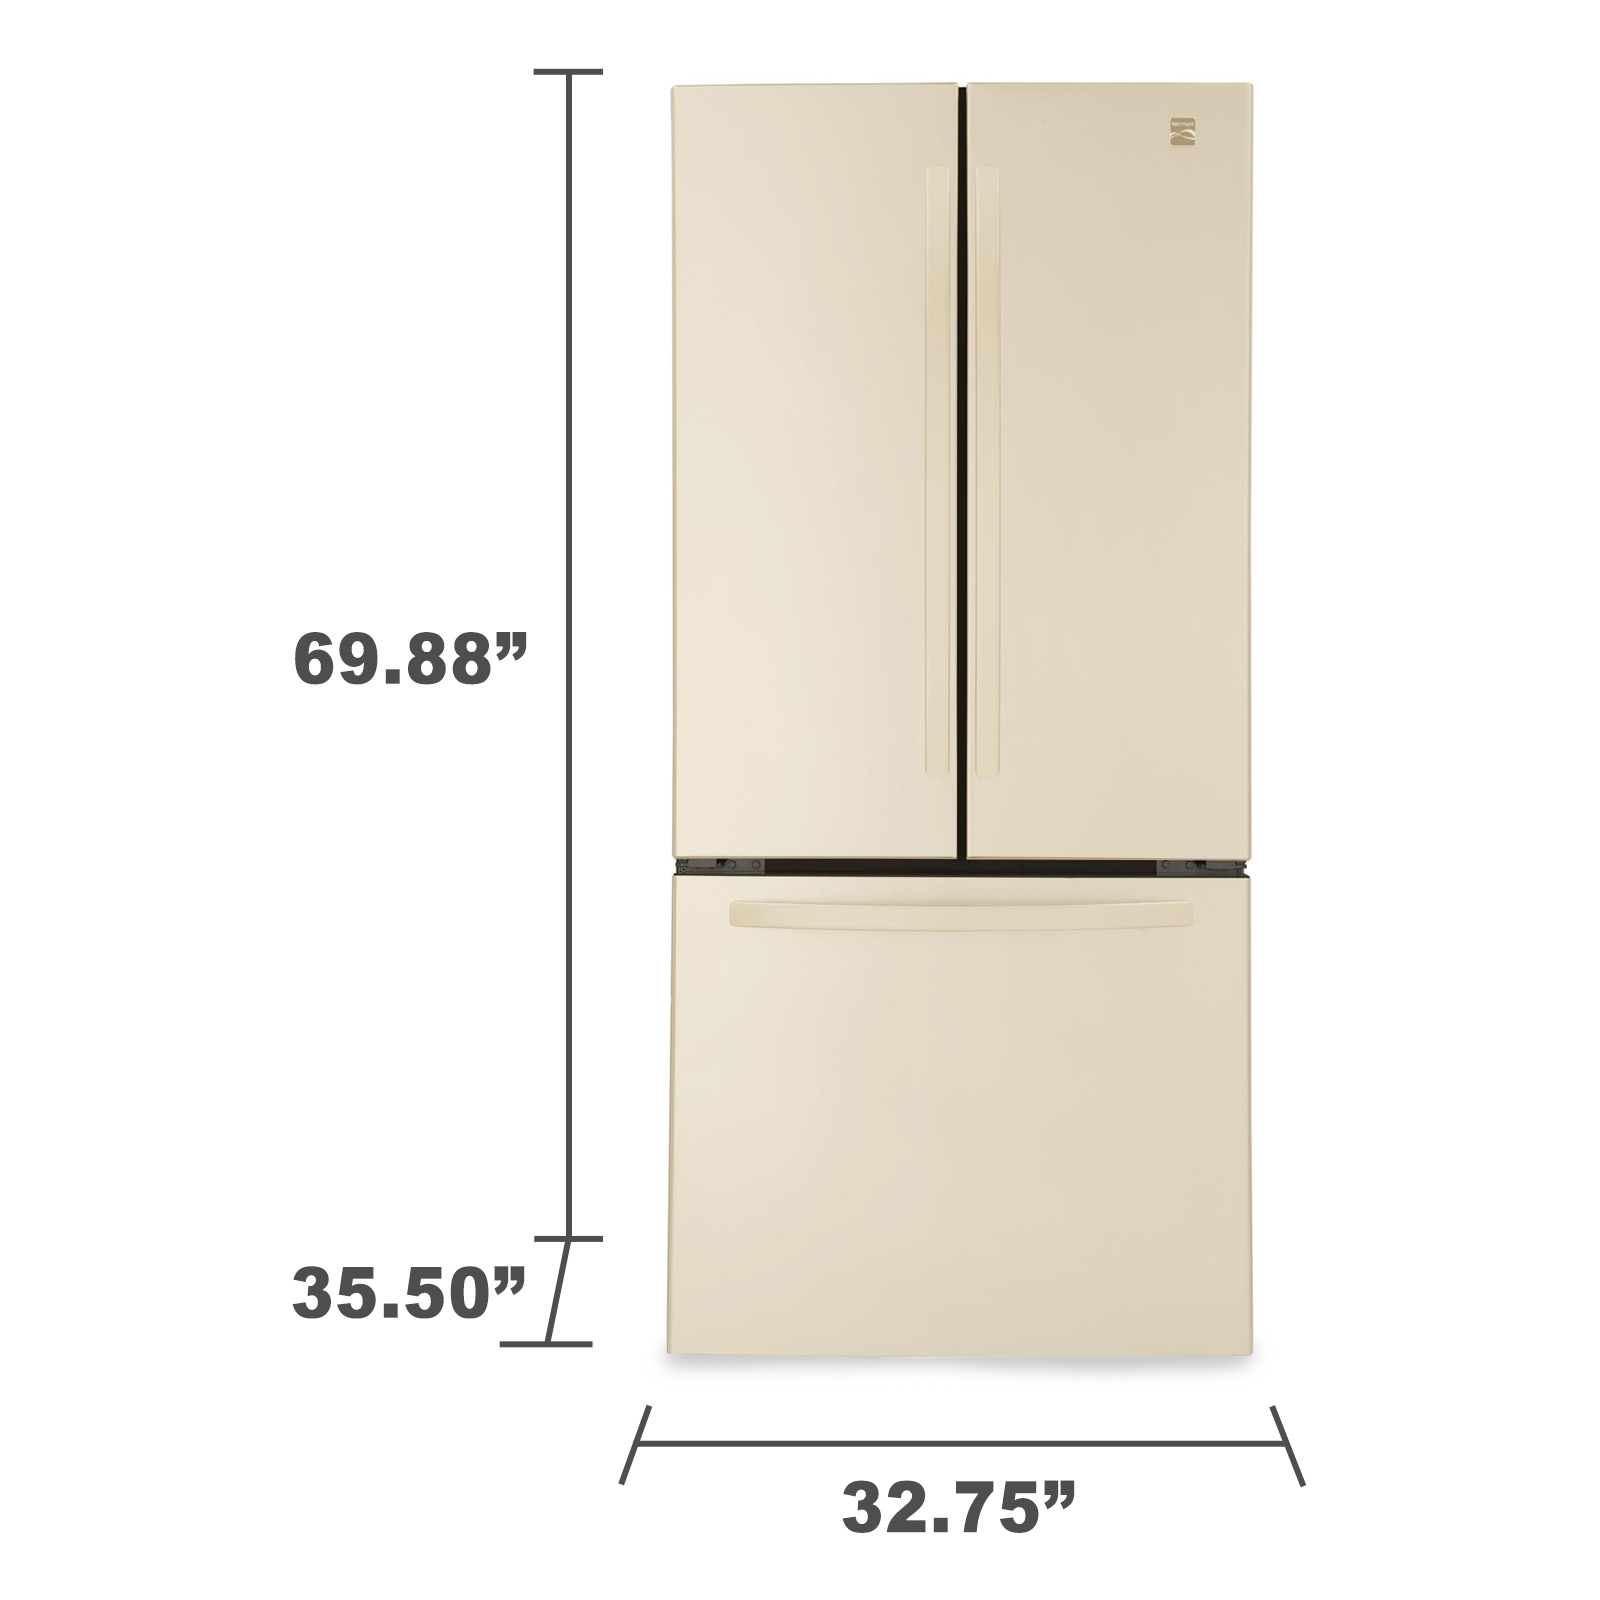 Kenmore 71314 23.9 cu. ft.  French Door Bottom-Freezer Refrigerator - Bisque